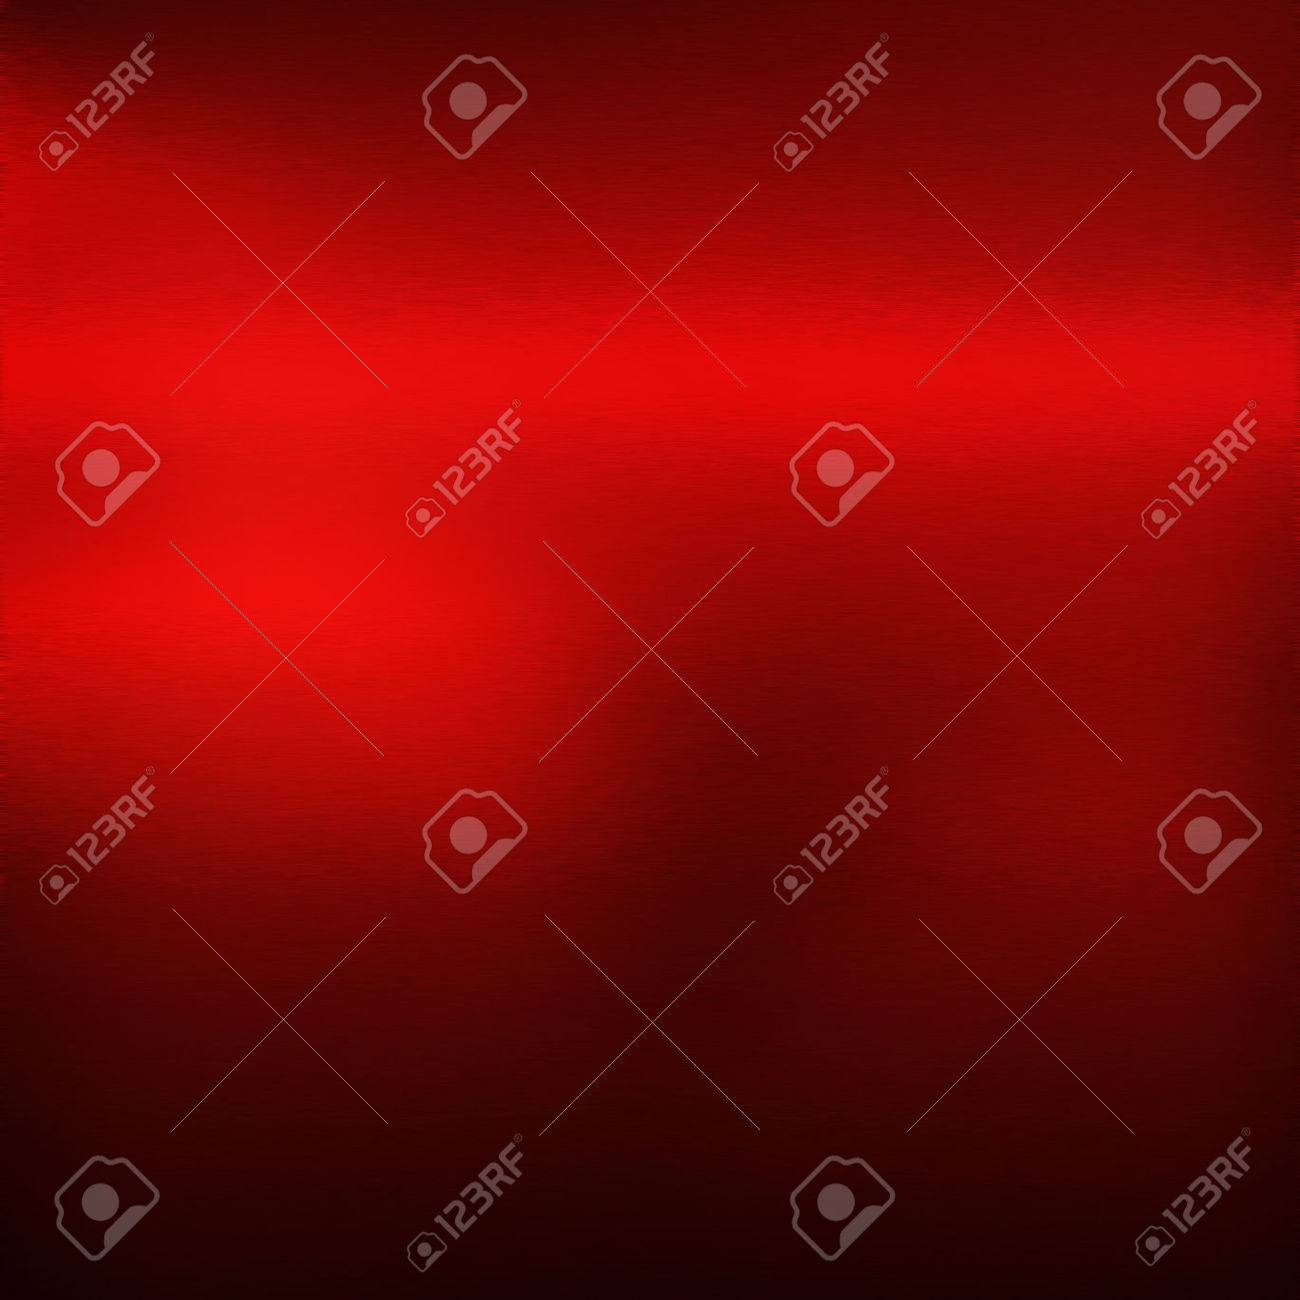 red abstract background metal texture - 50211469